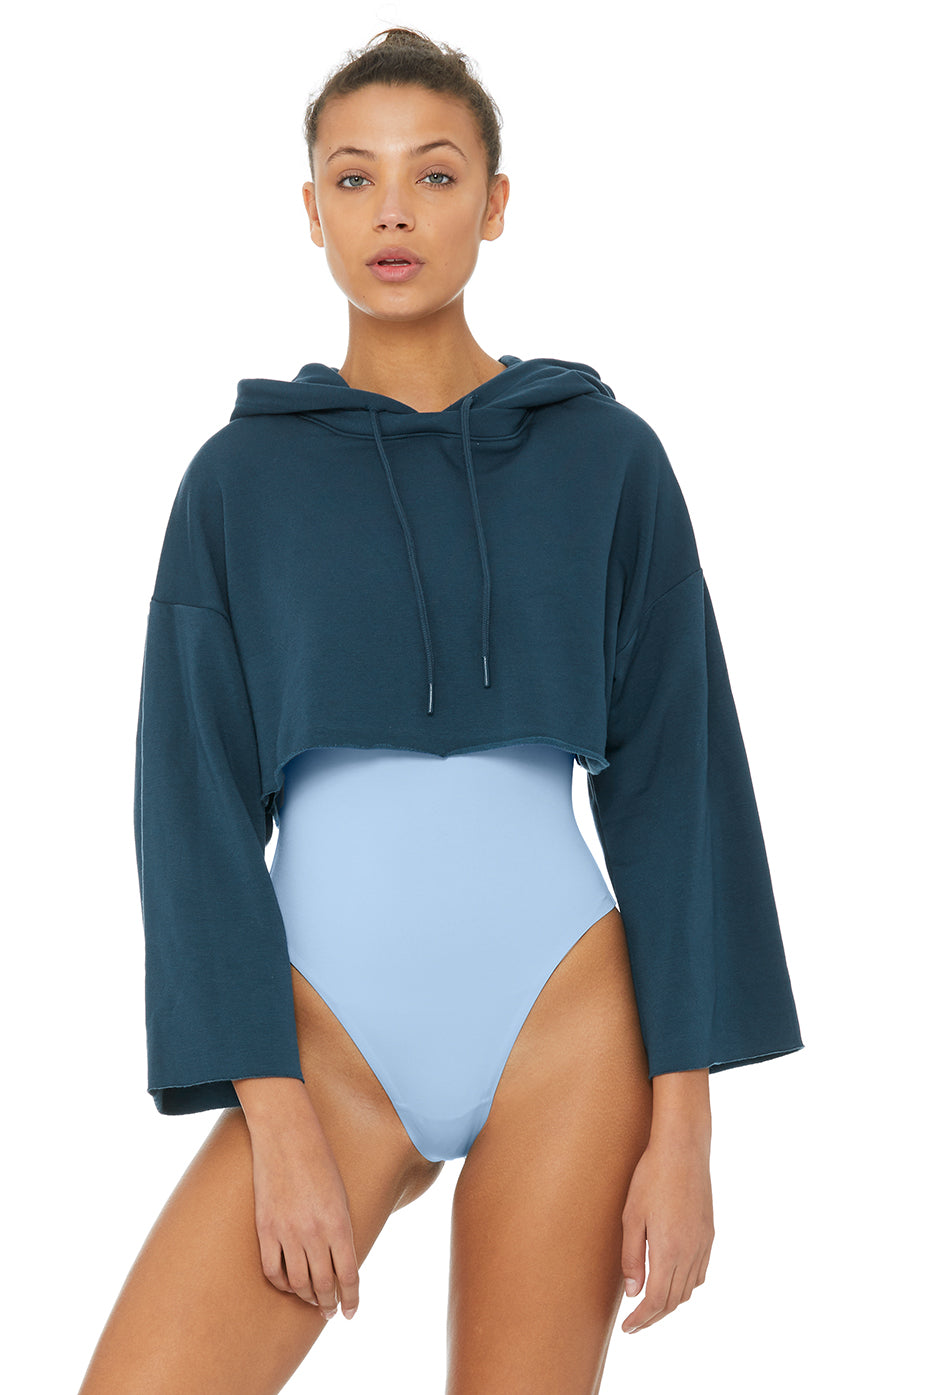 Limited-Edition Exclusive Edition Crop Hoodie